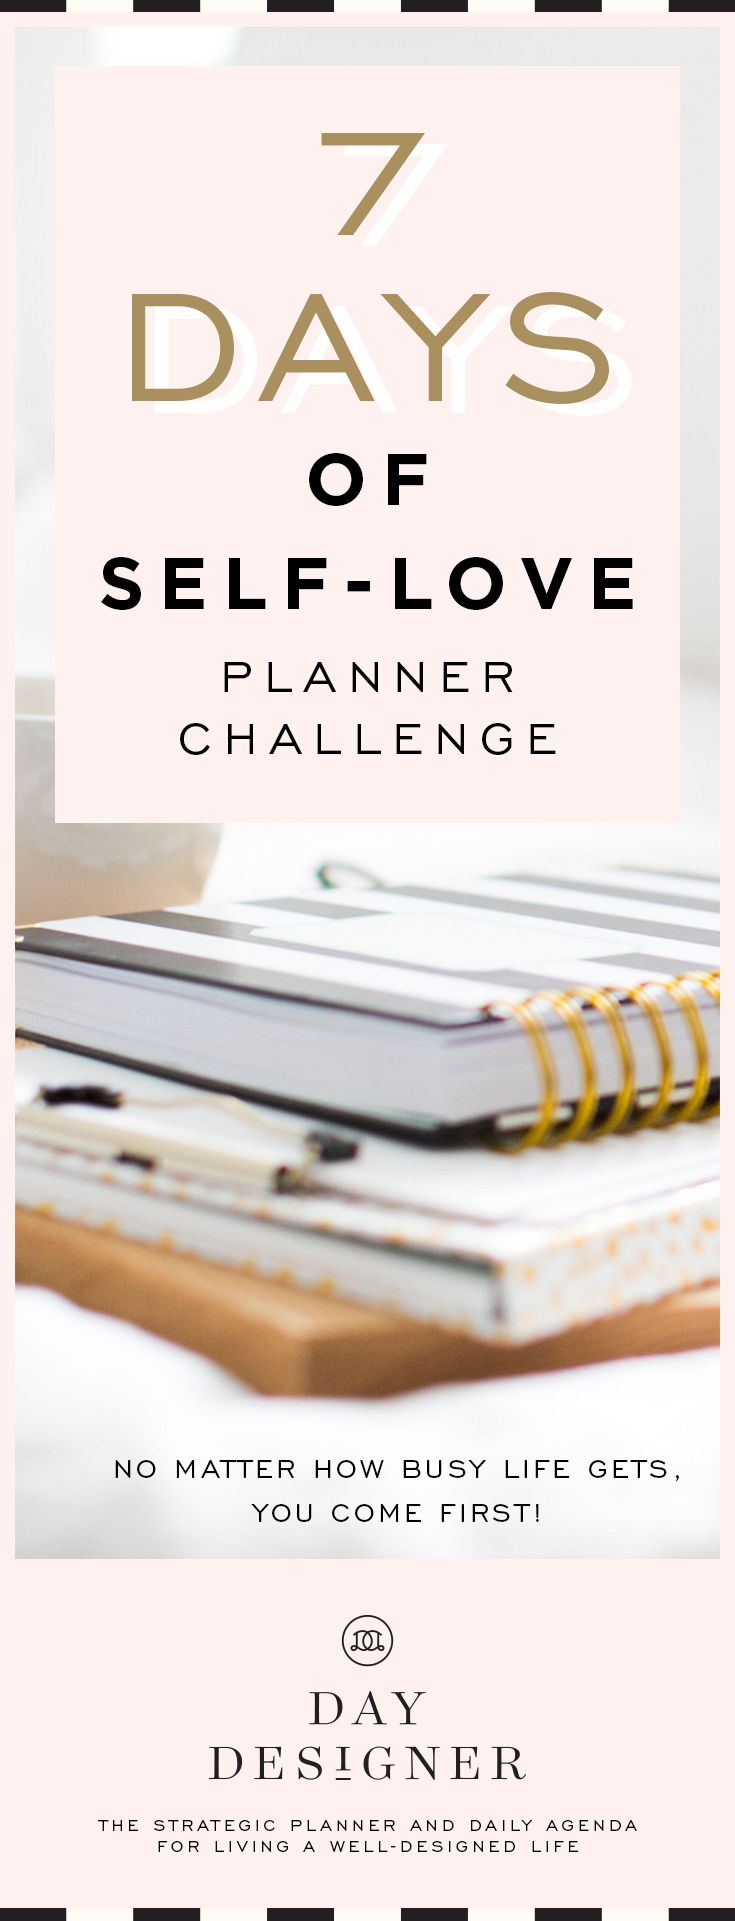 Sign up today for February 11-17, 2018. No matter how busy life gets, YOU come first. | 7 Days of Self-Love #daydesigner #ddplanforselfcare